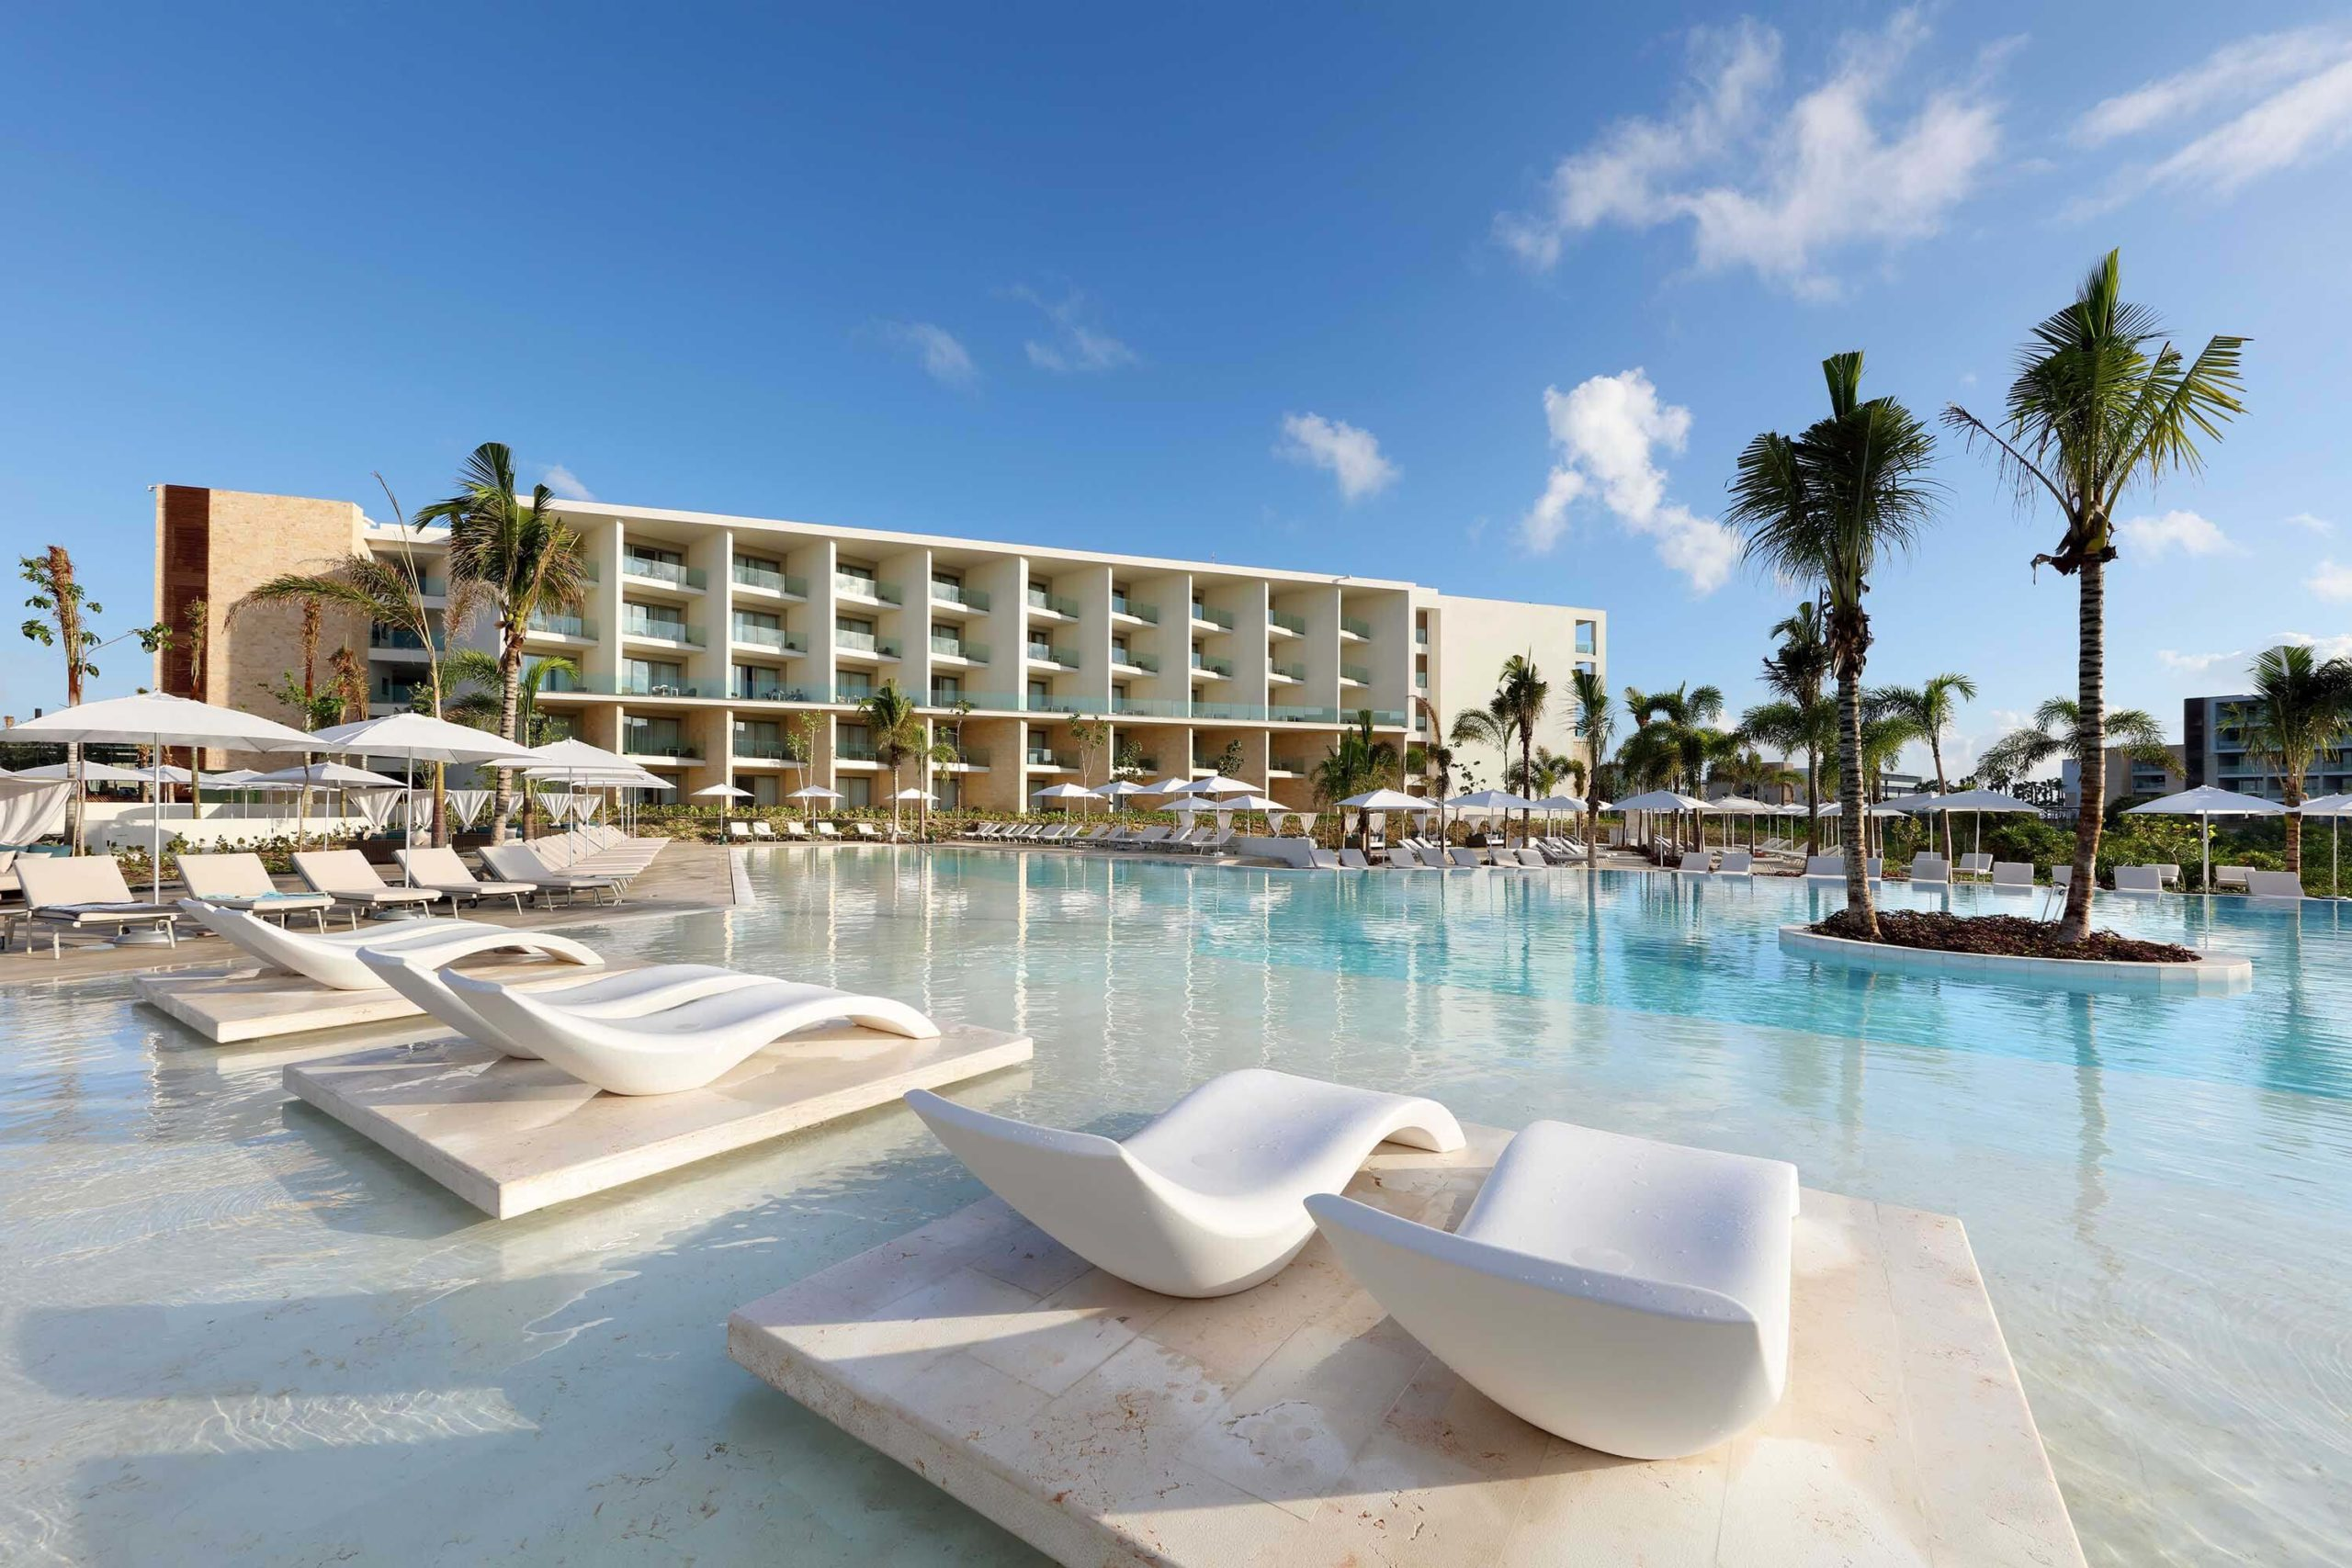 pool area with loungers Palladium Costa Mujeres